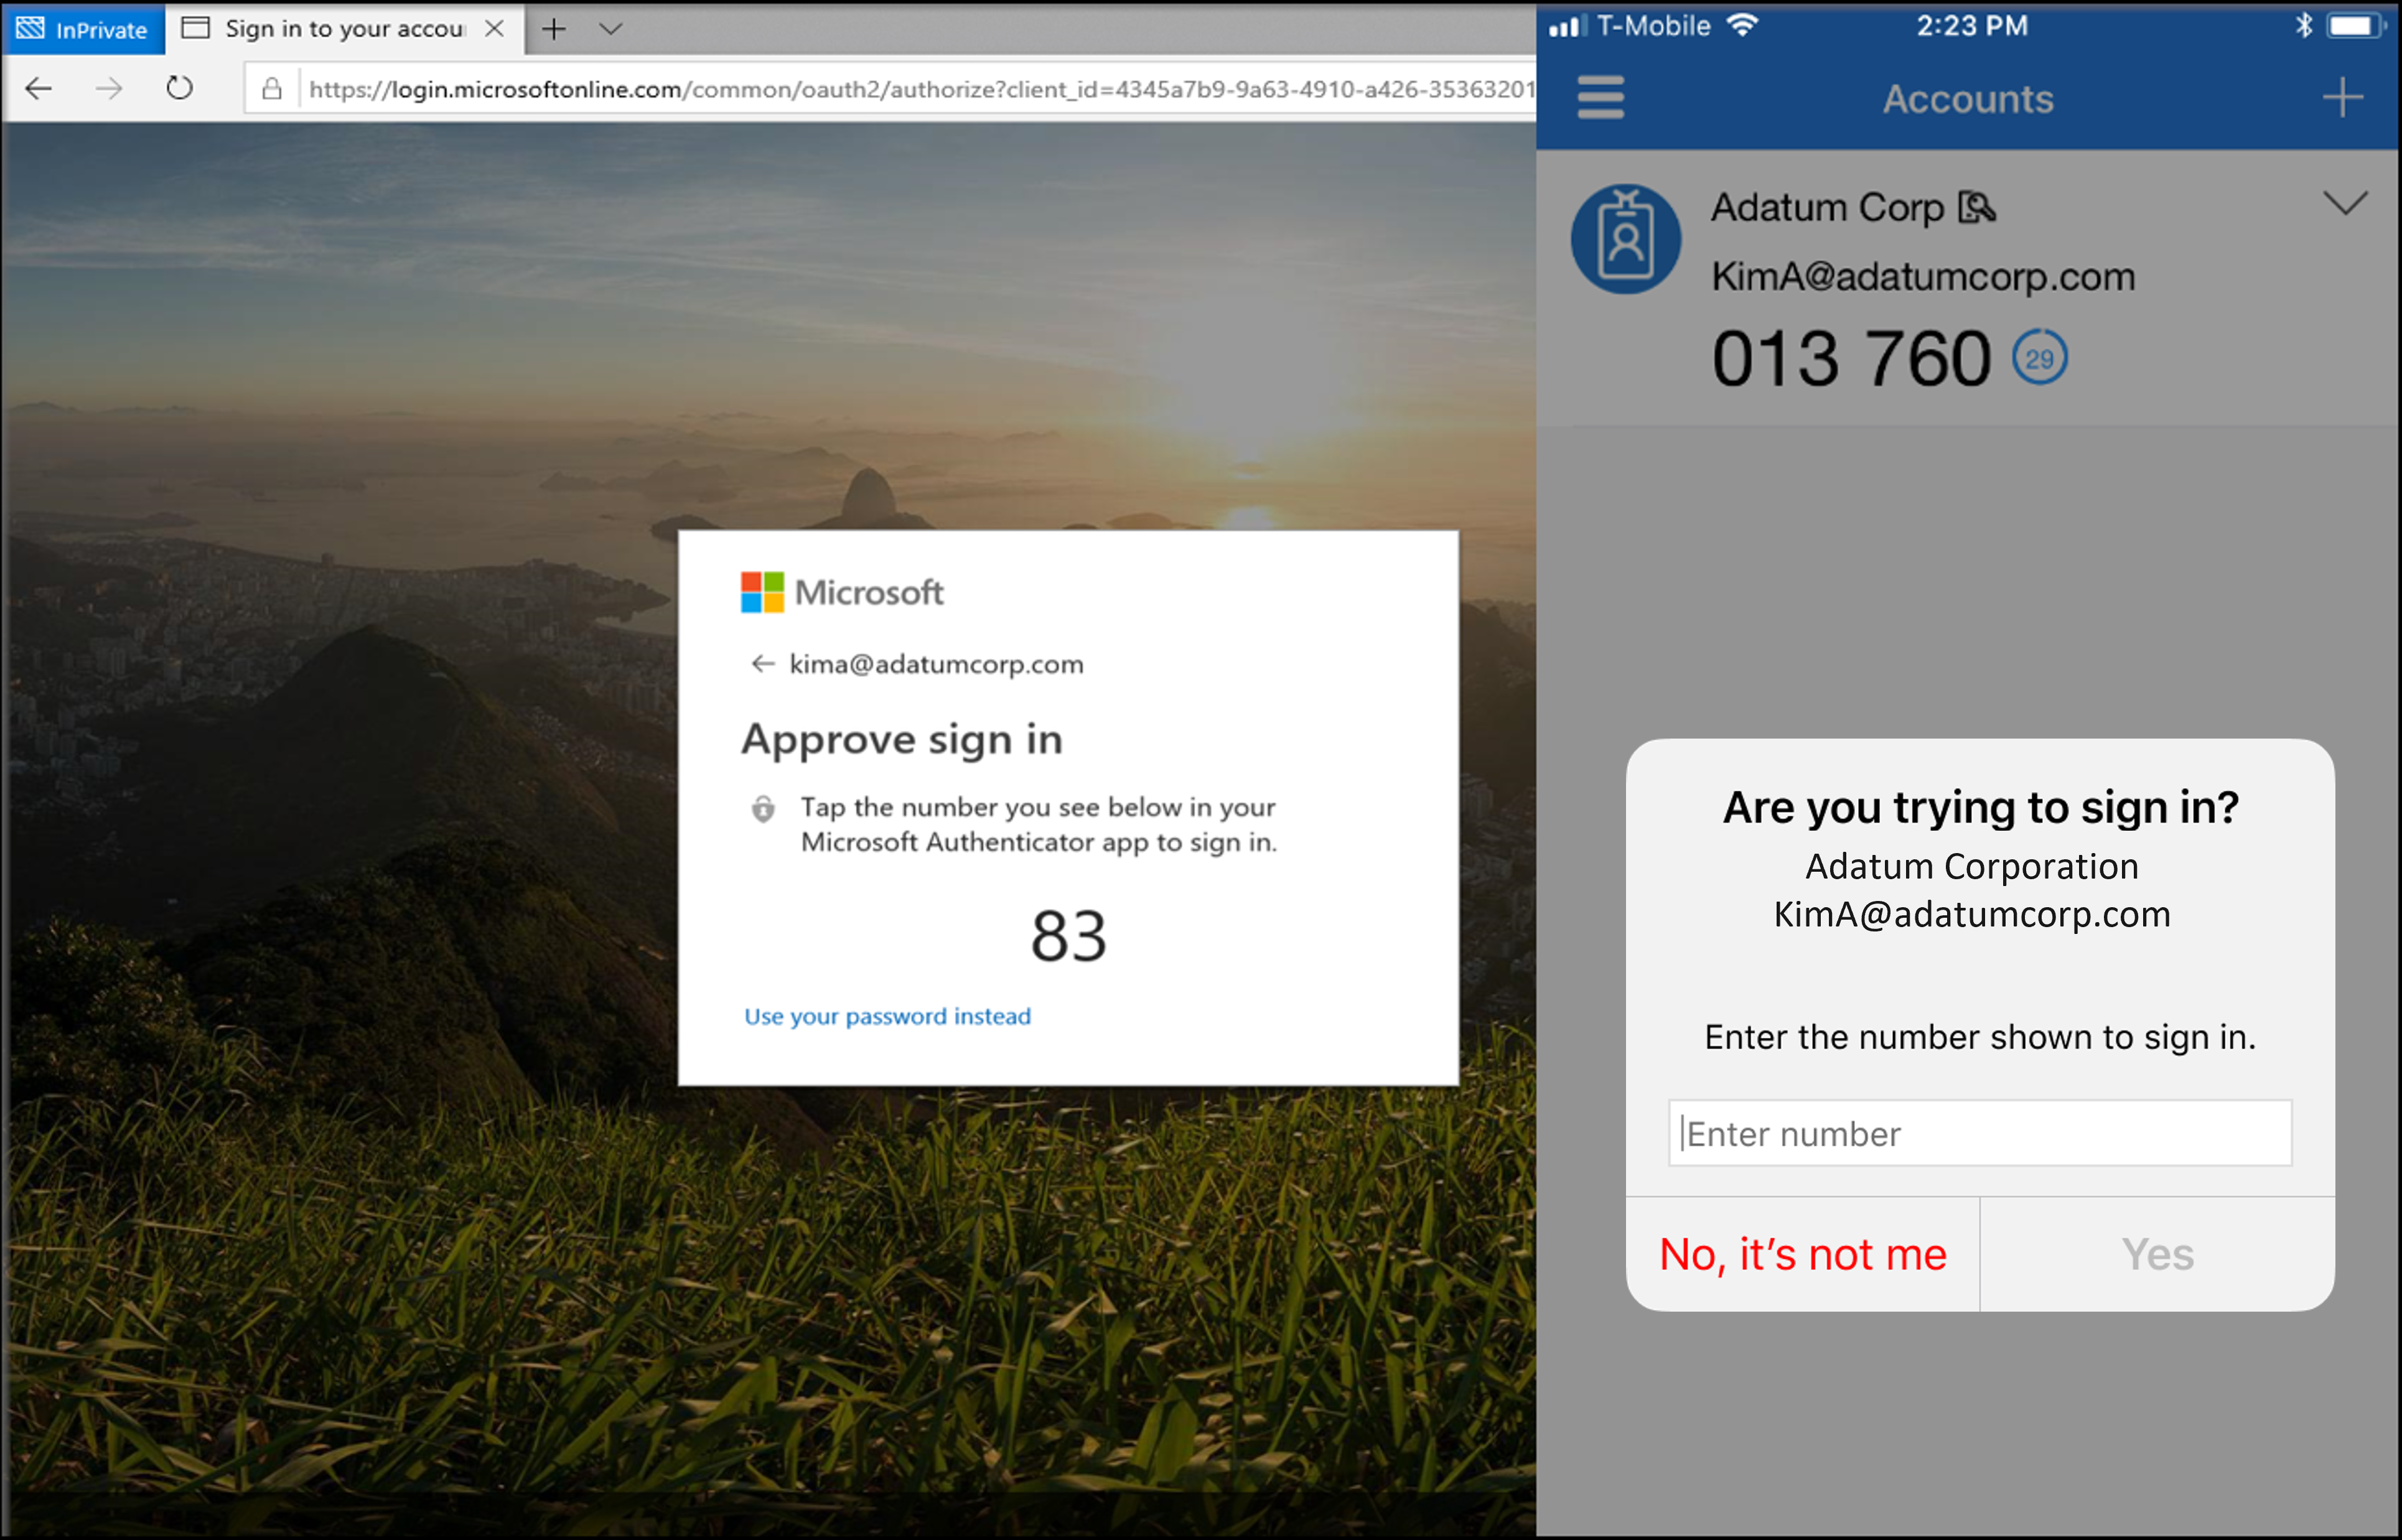 Enable passwordless sign-in with the Microsoft Authenticator app